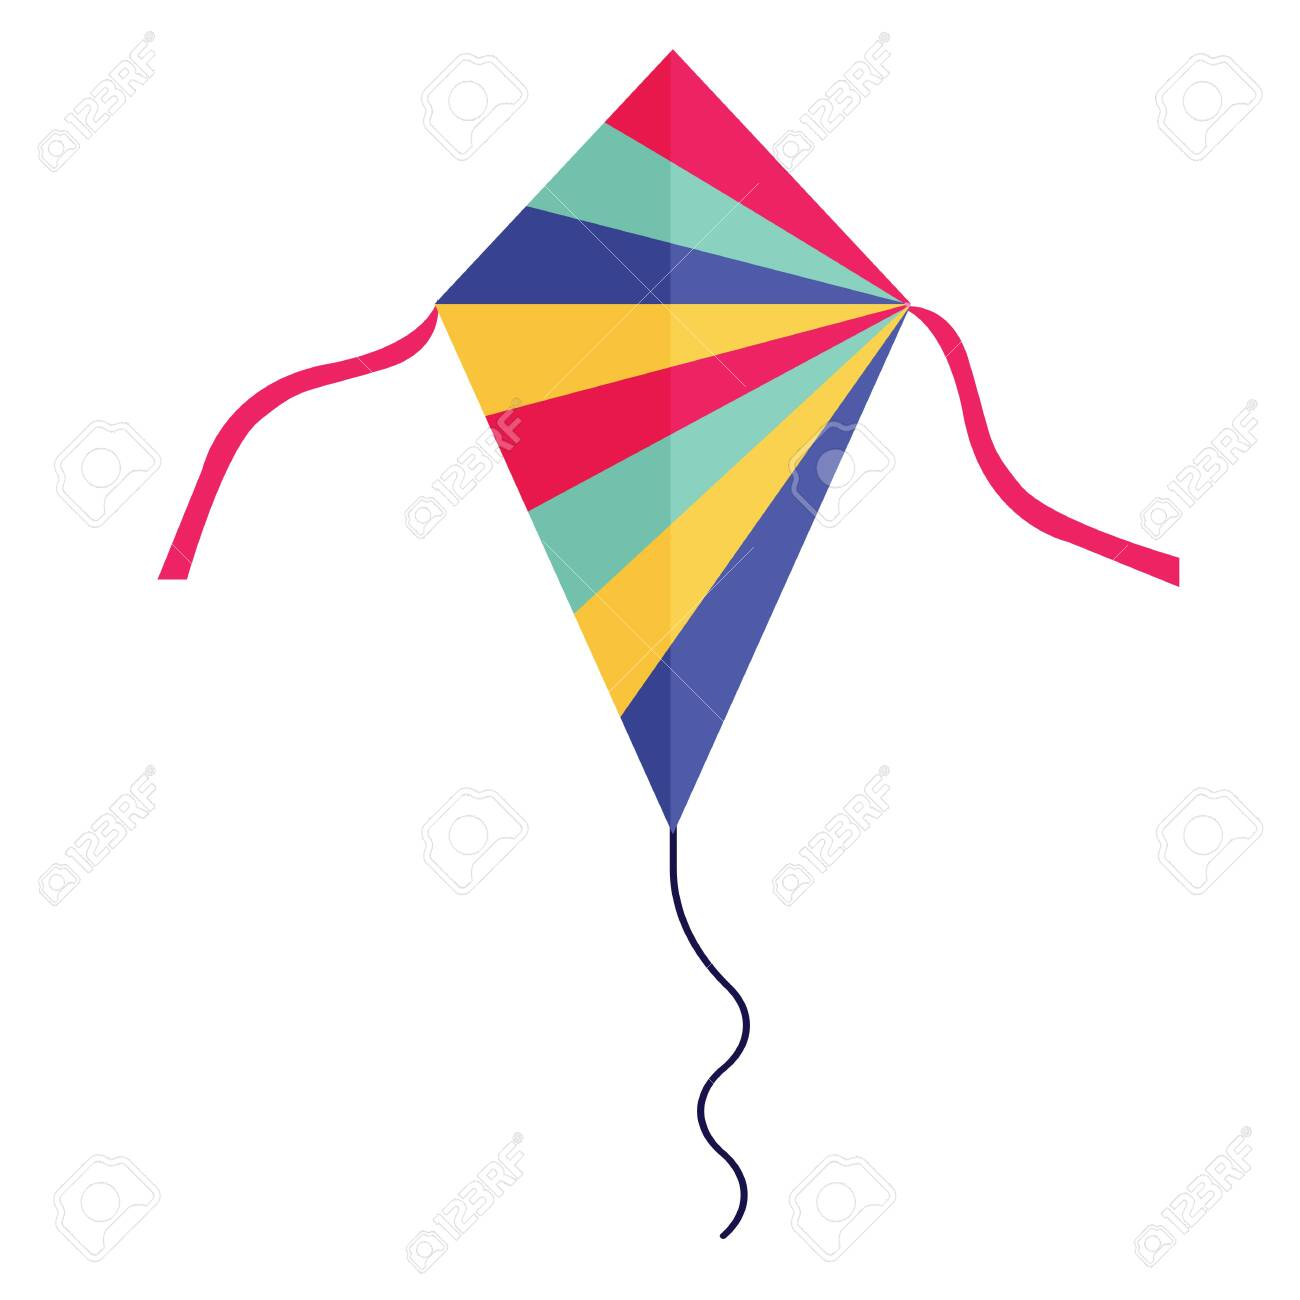 Flying handle kite for outdoor fun games and beach activities